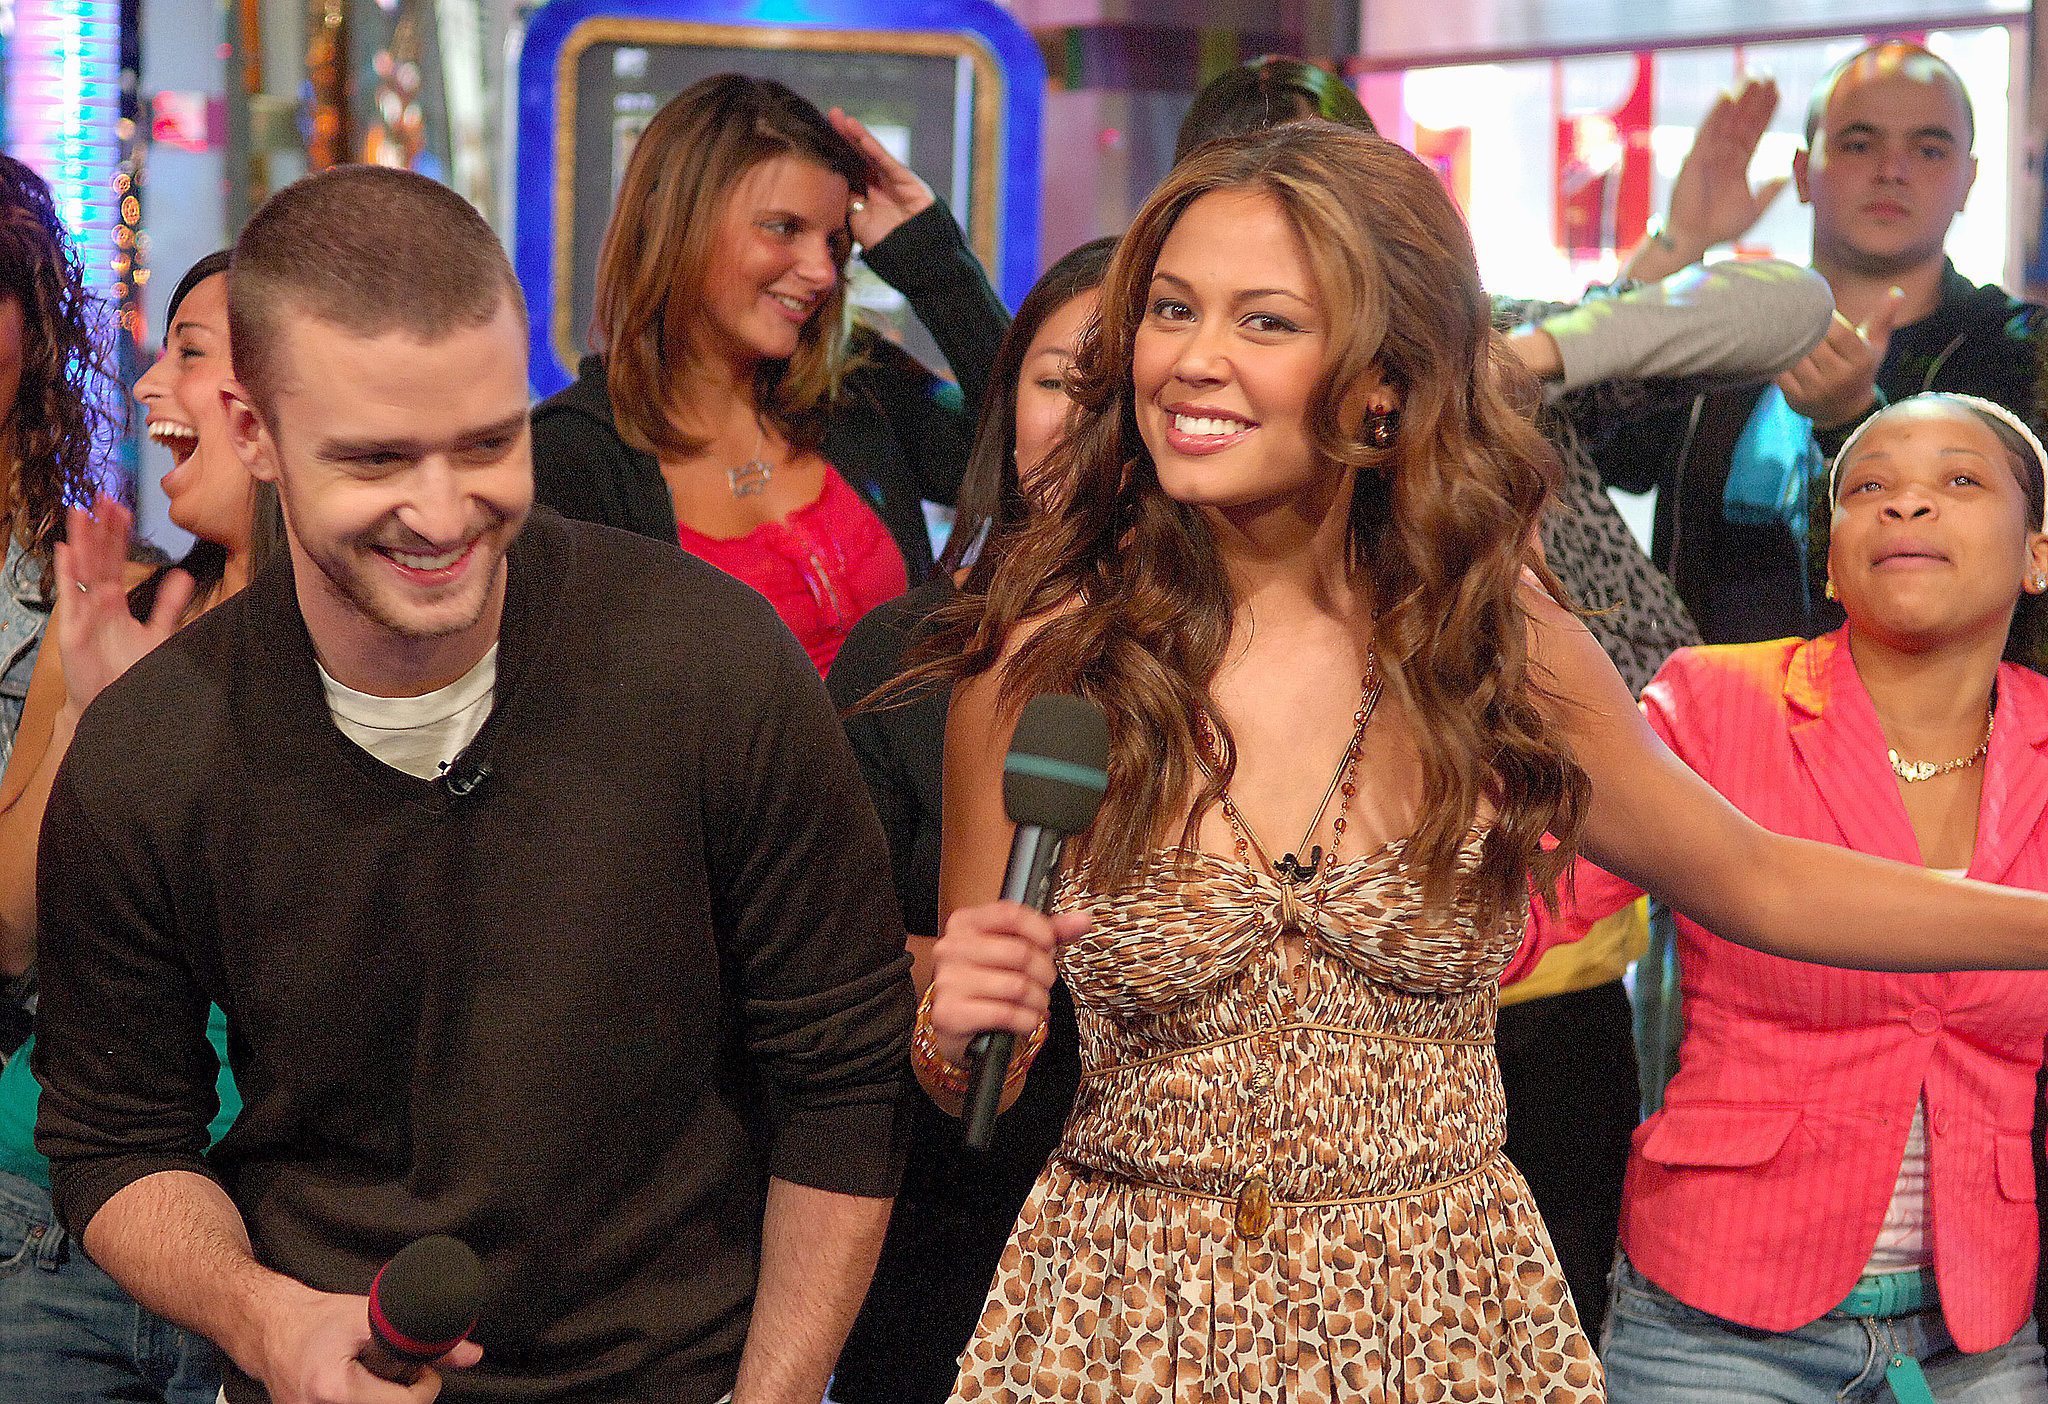 Justin had fun with Vanessa Minnilllo while visiting TRL in September 200